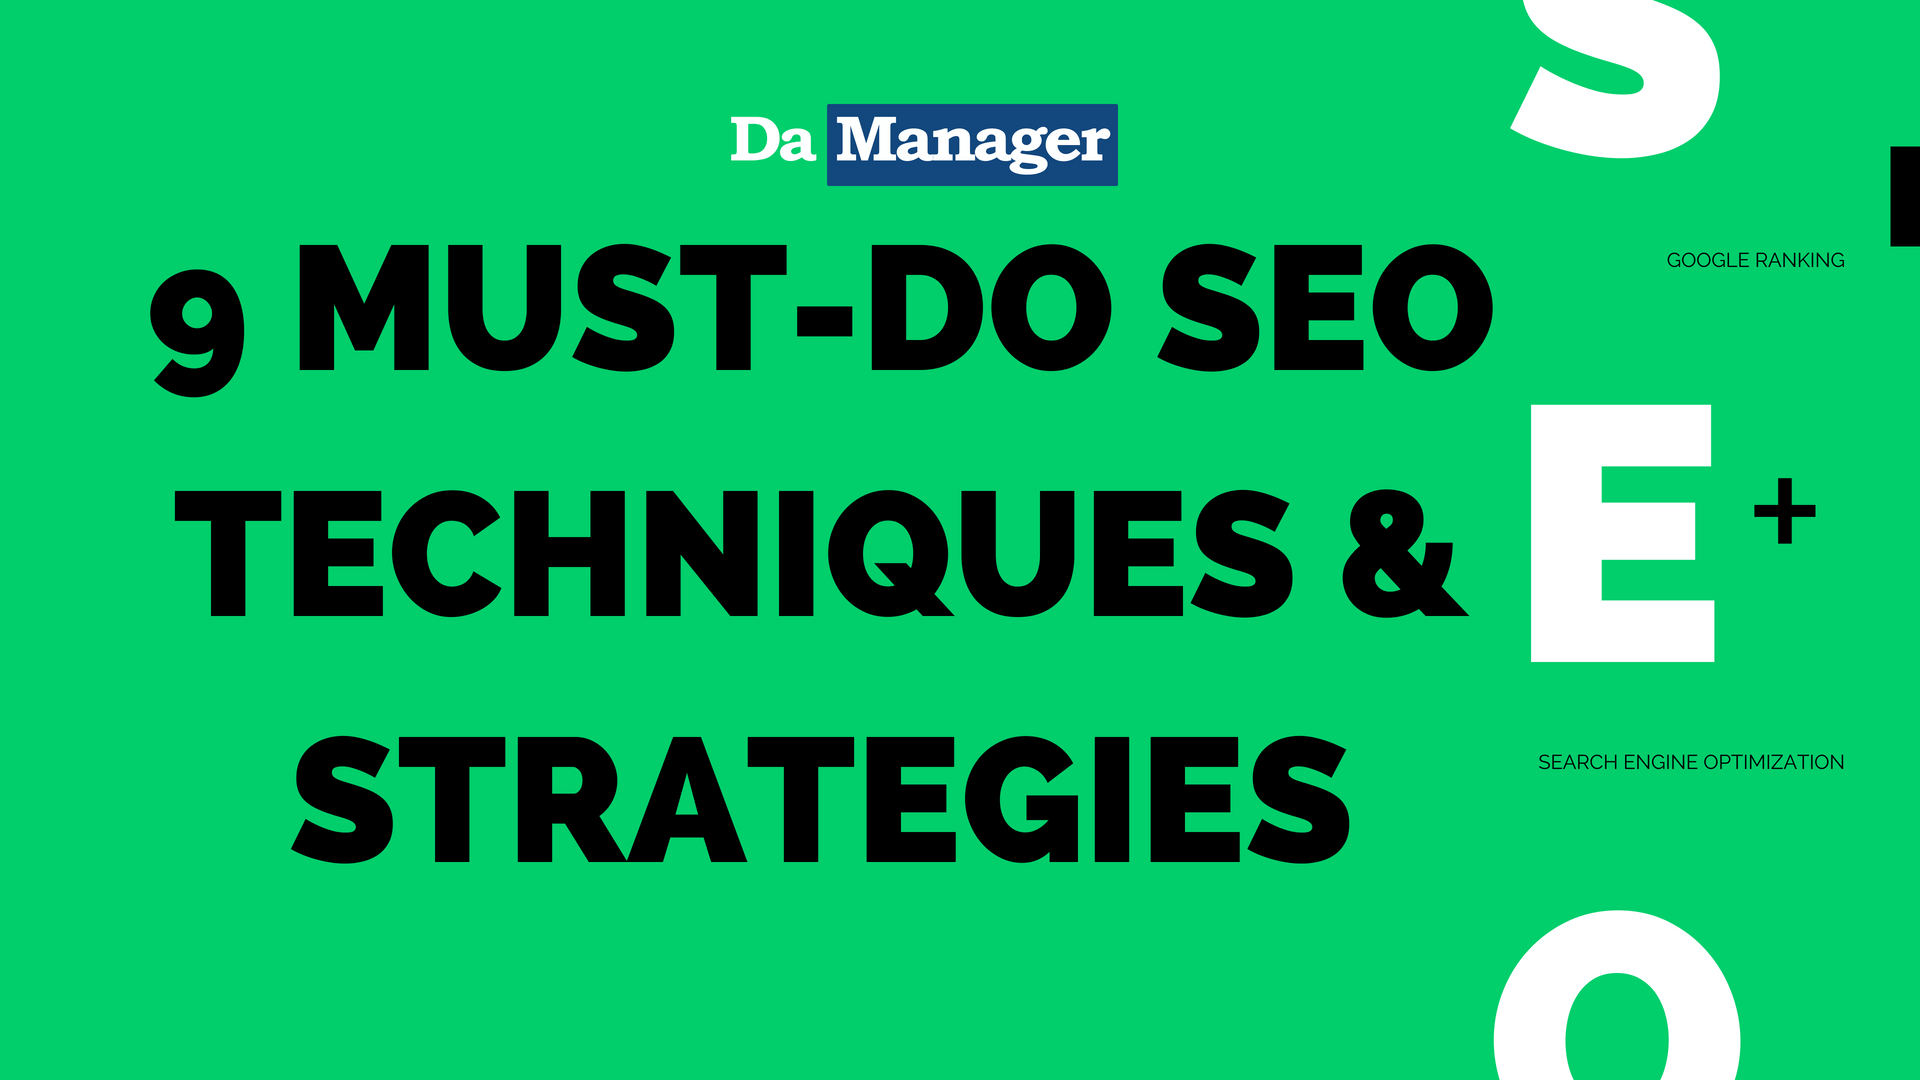 9 Must-do SEO Techniques & Strategies